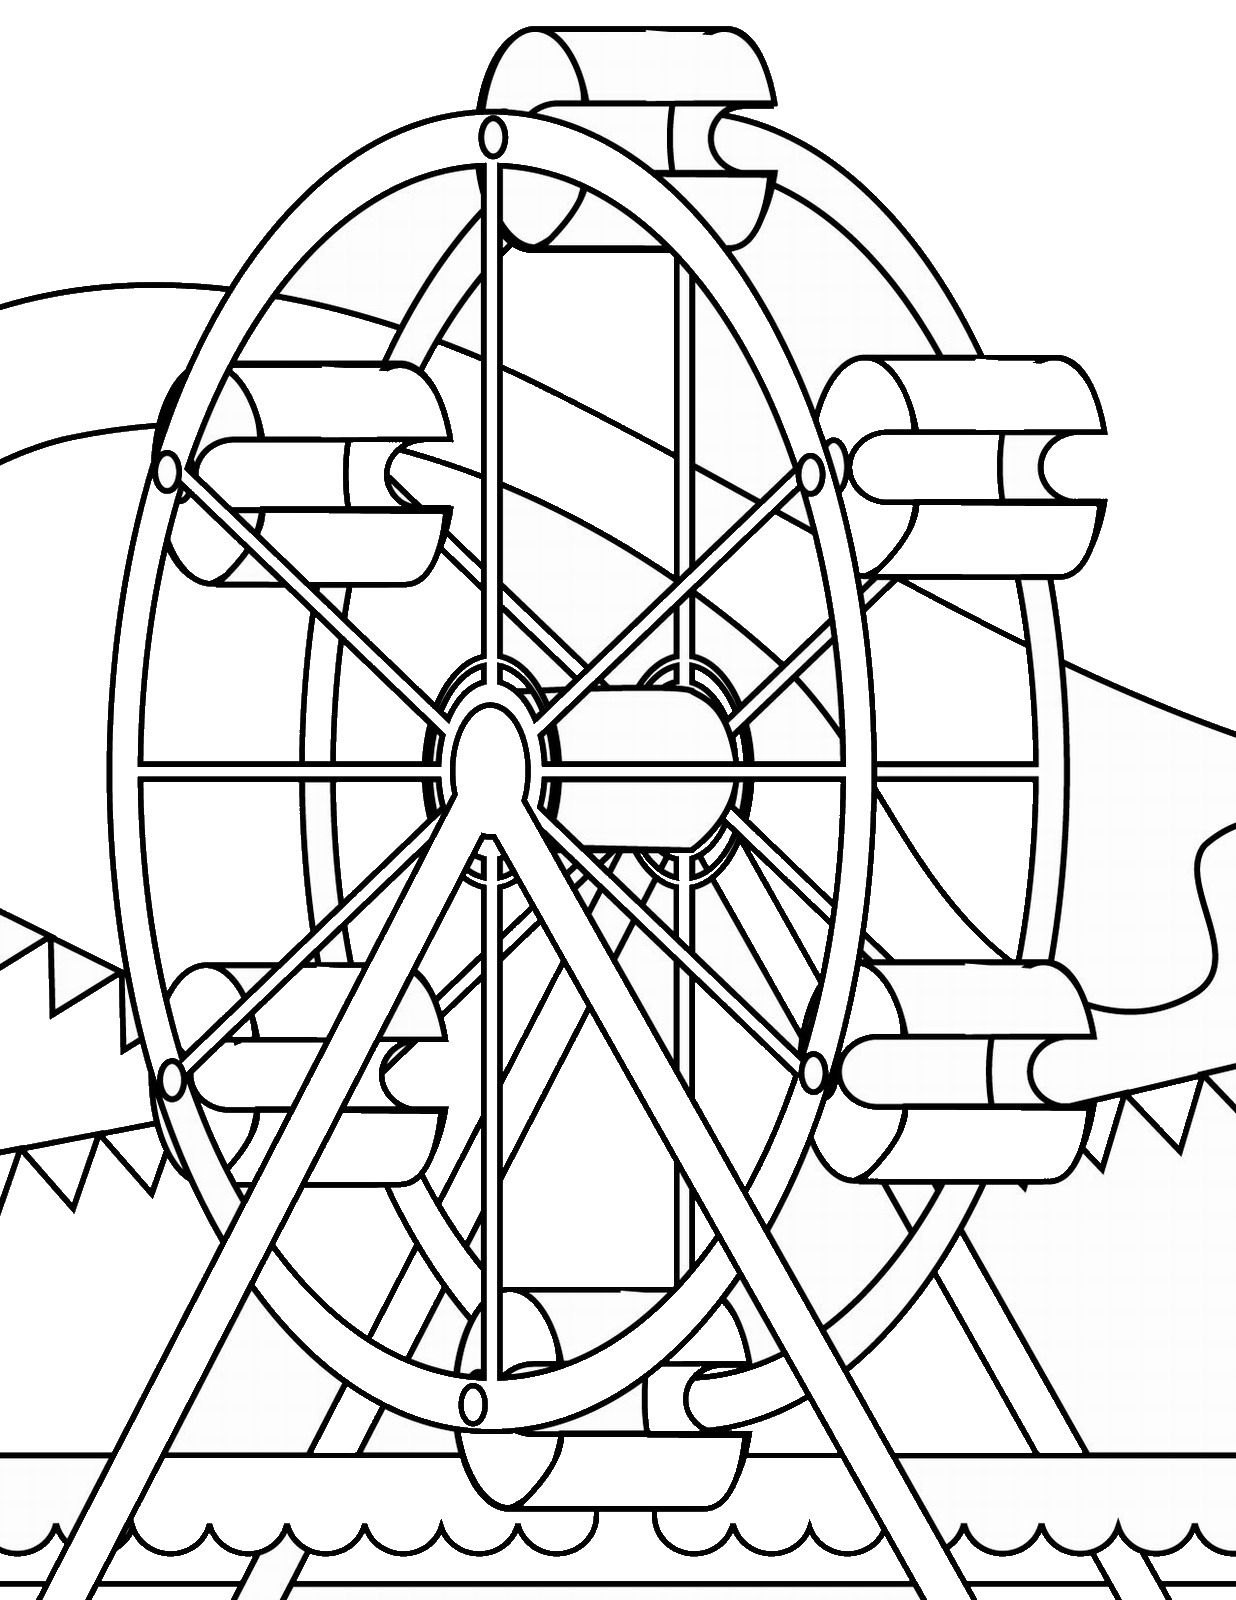 Ferris Wheel Coloring Pages To Print